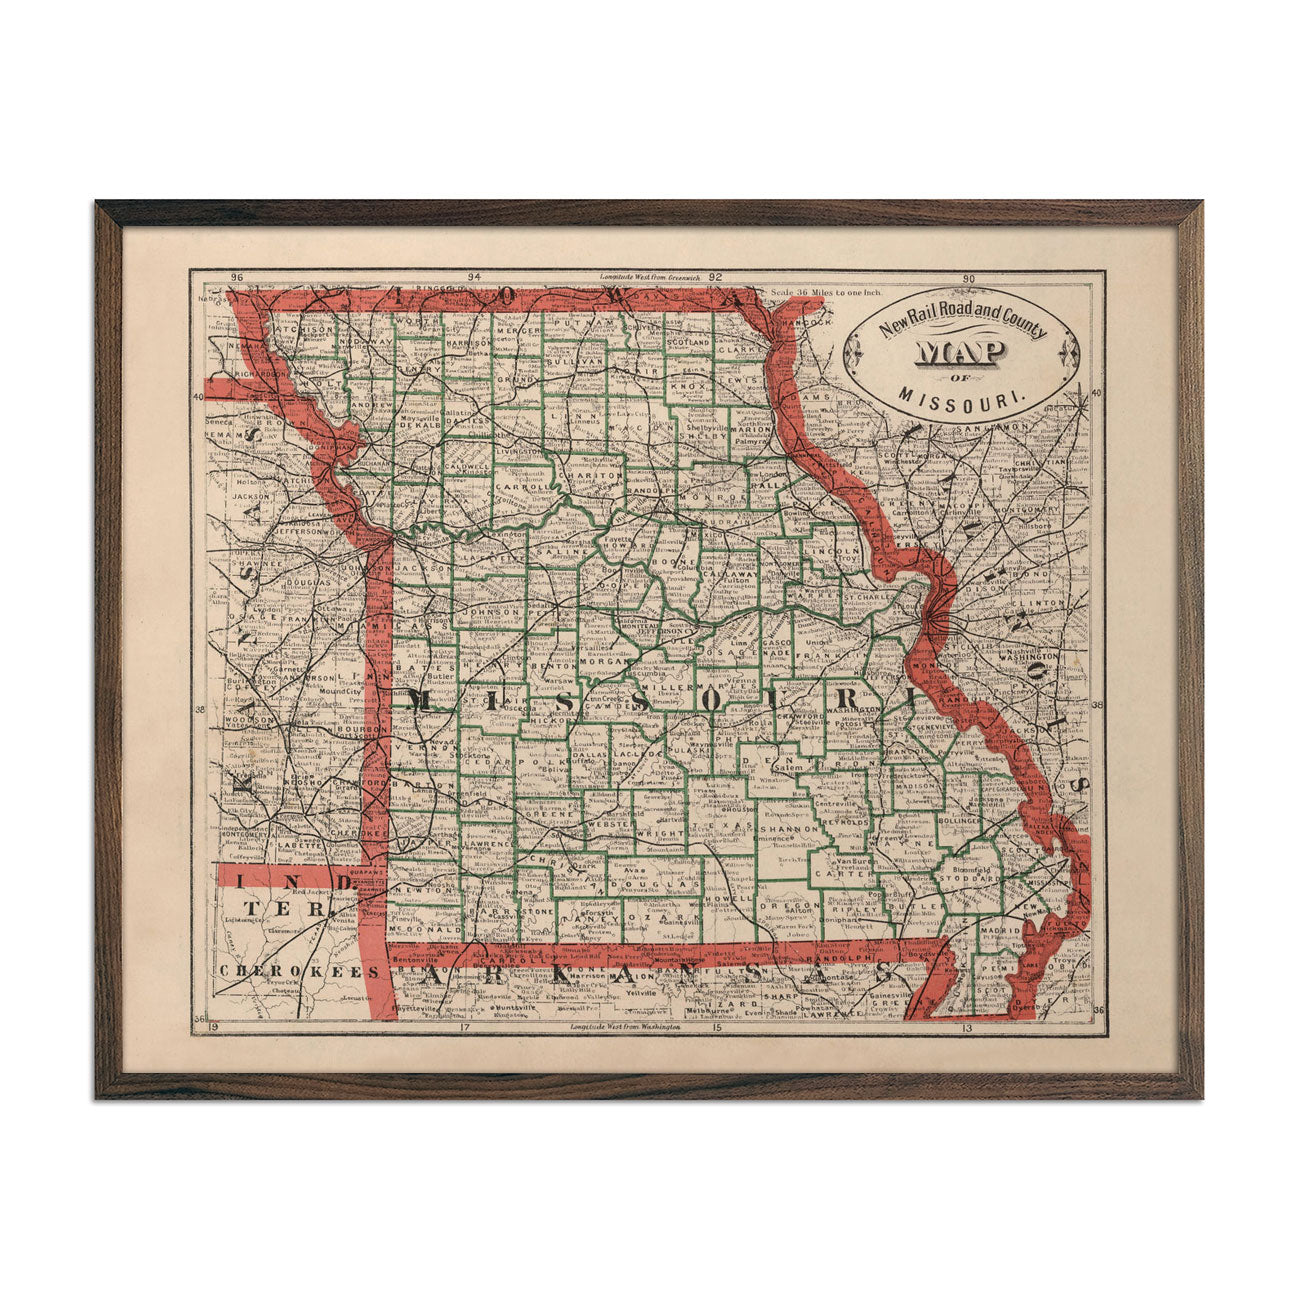 Vintage Map of Missouri 1883